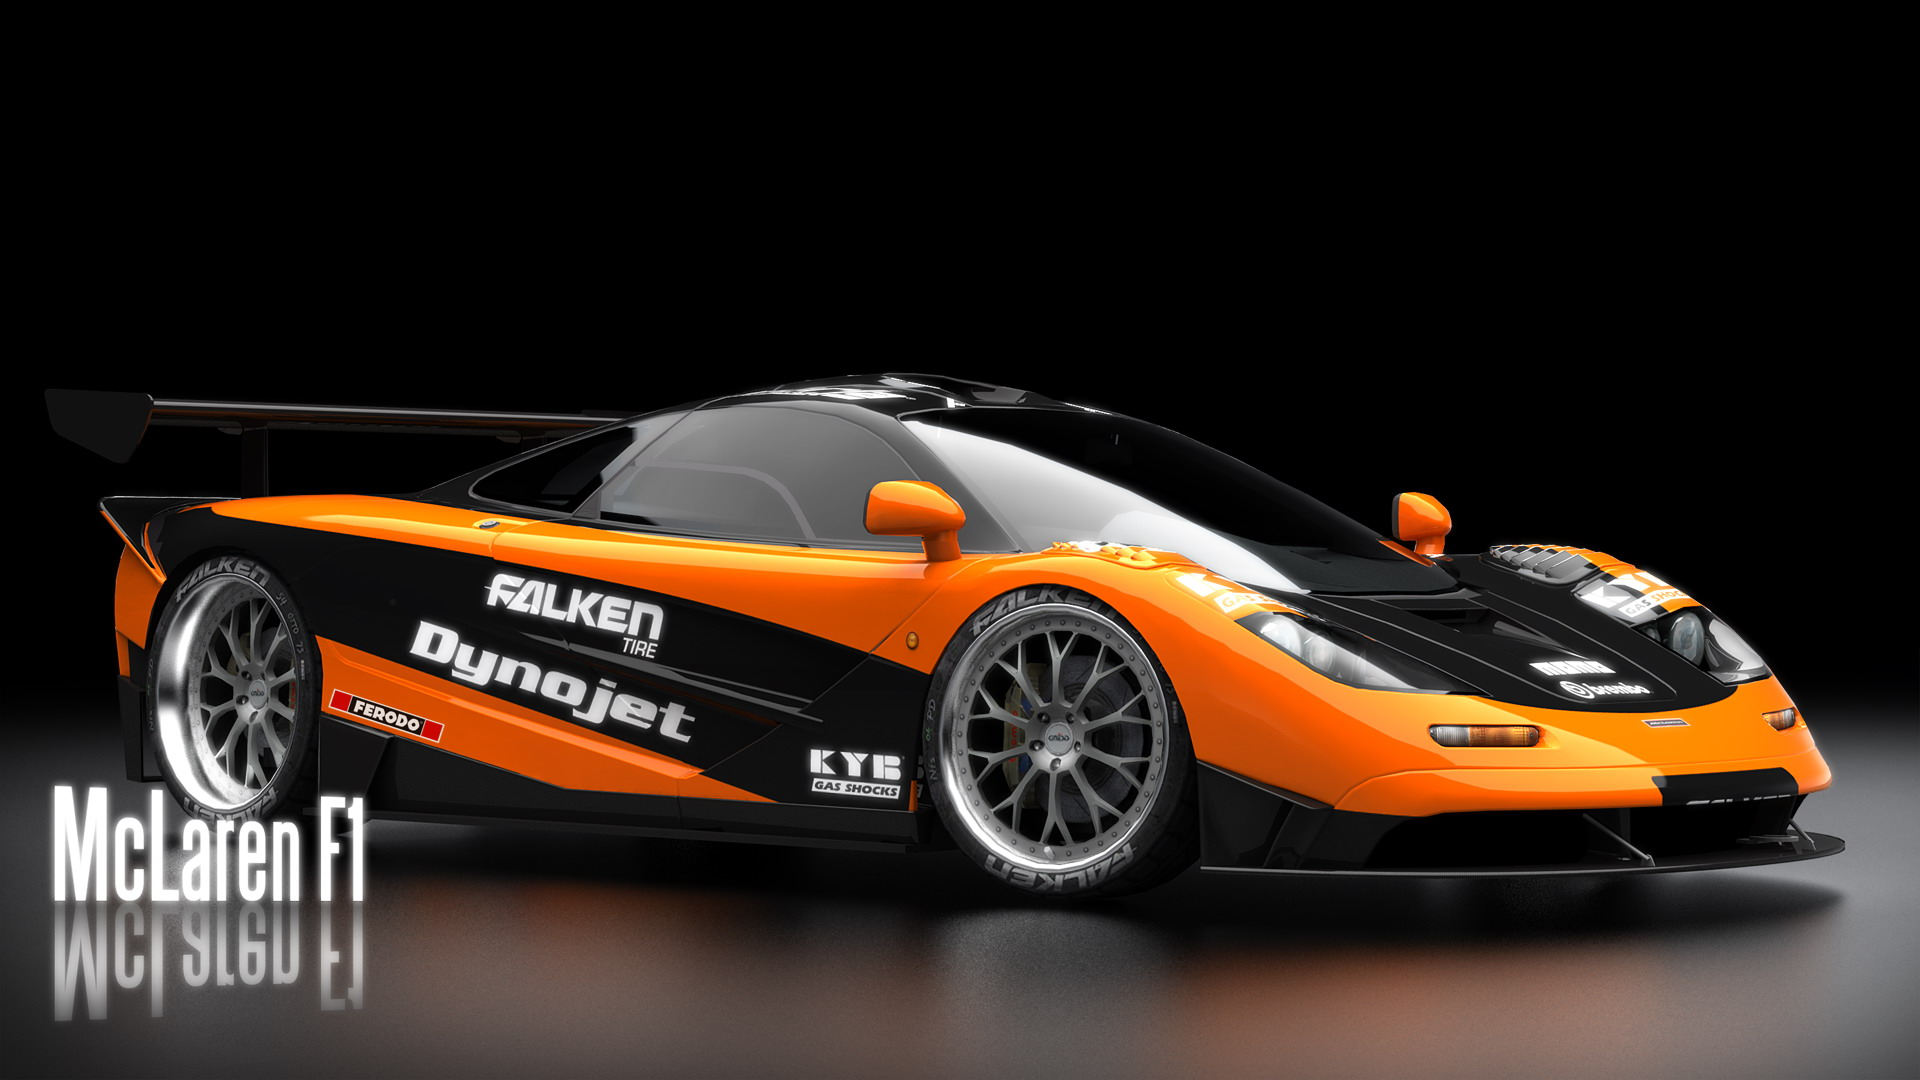 McLaren F1 Wallpaper is for pc desktop laptop Wallpaper